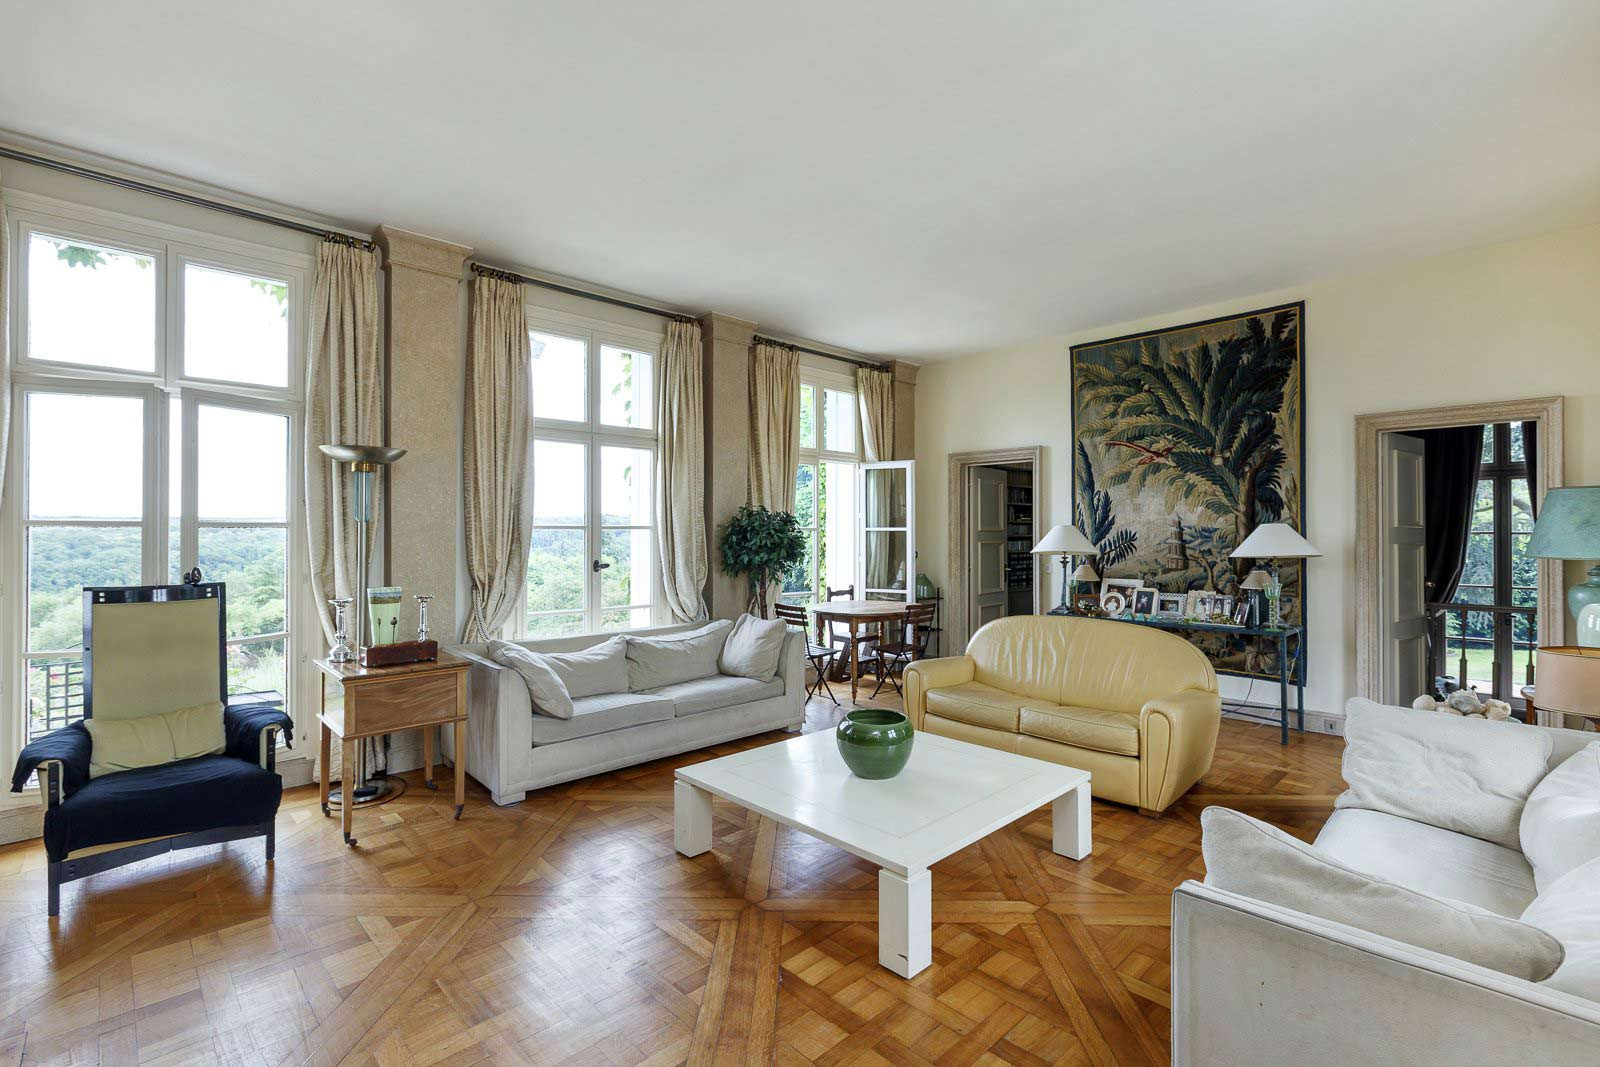 Chambourcy - France - House, 10 rooms, 6 bedrooms - Slideshow Picture 1